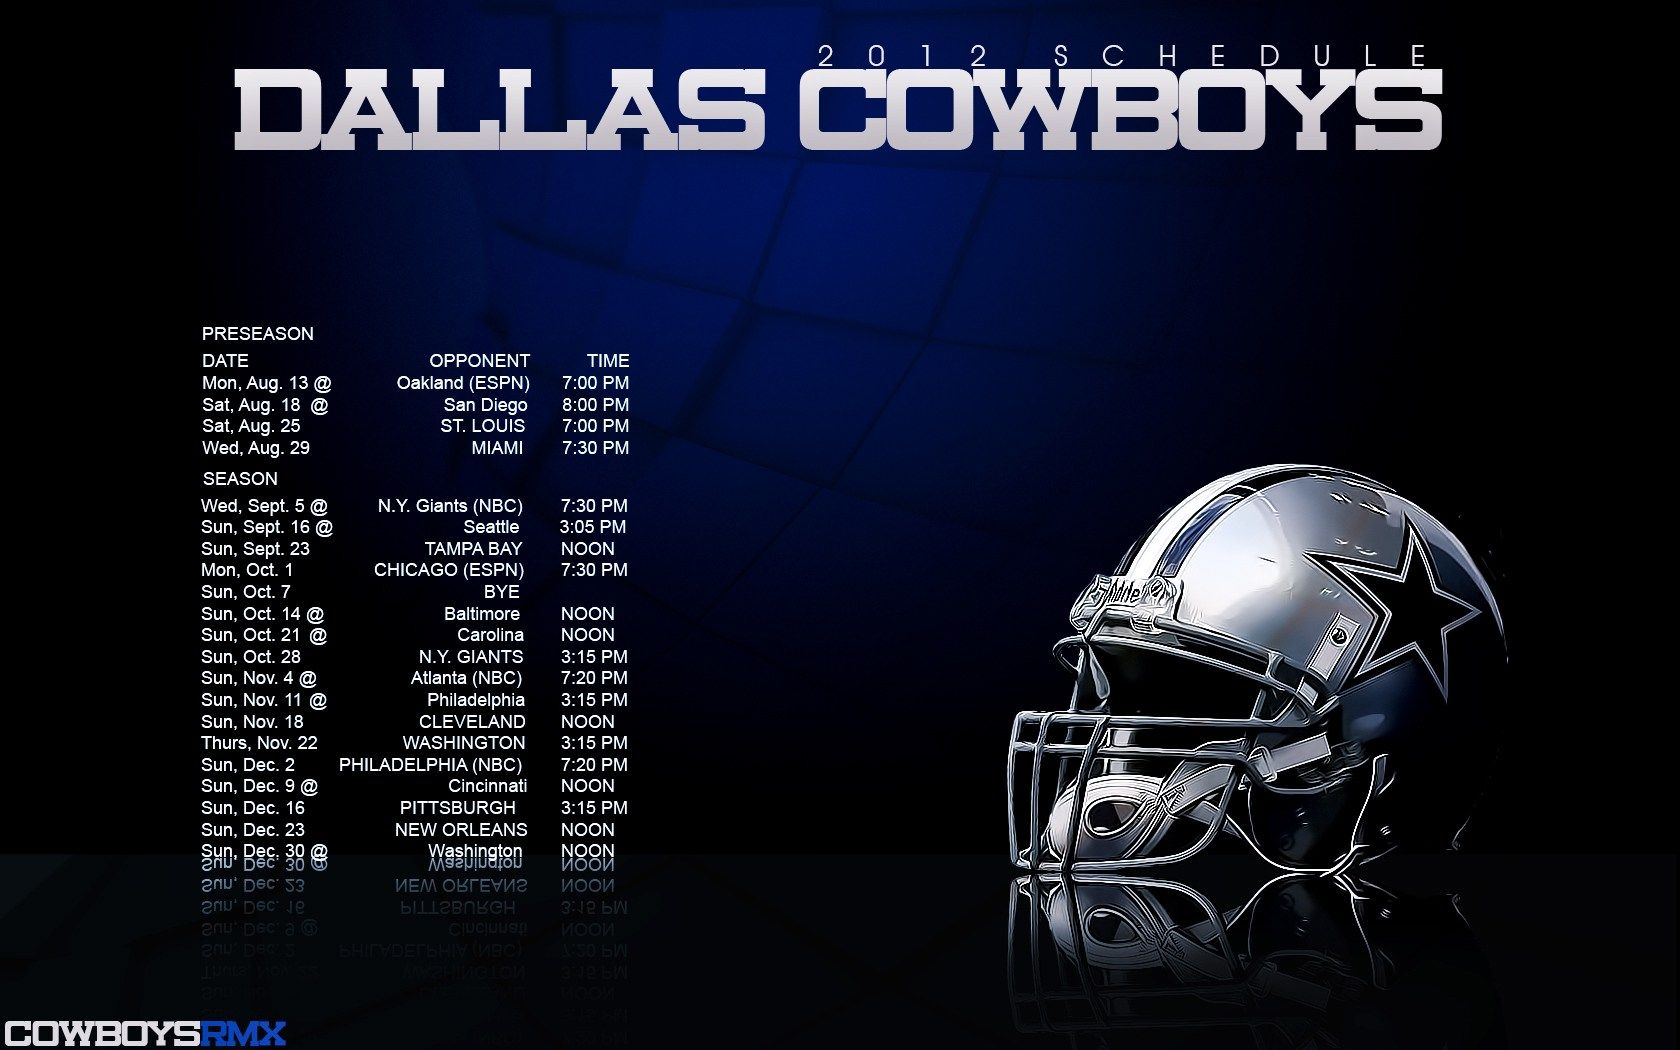 Best images about dallas cowboys wallpaper on pinterest hd best images about dallas cowboys wallpaper on pinterest voltagebd Choice Image